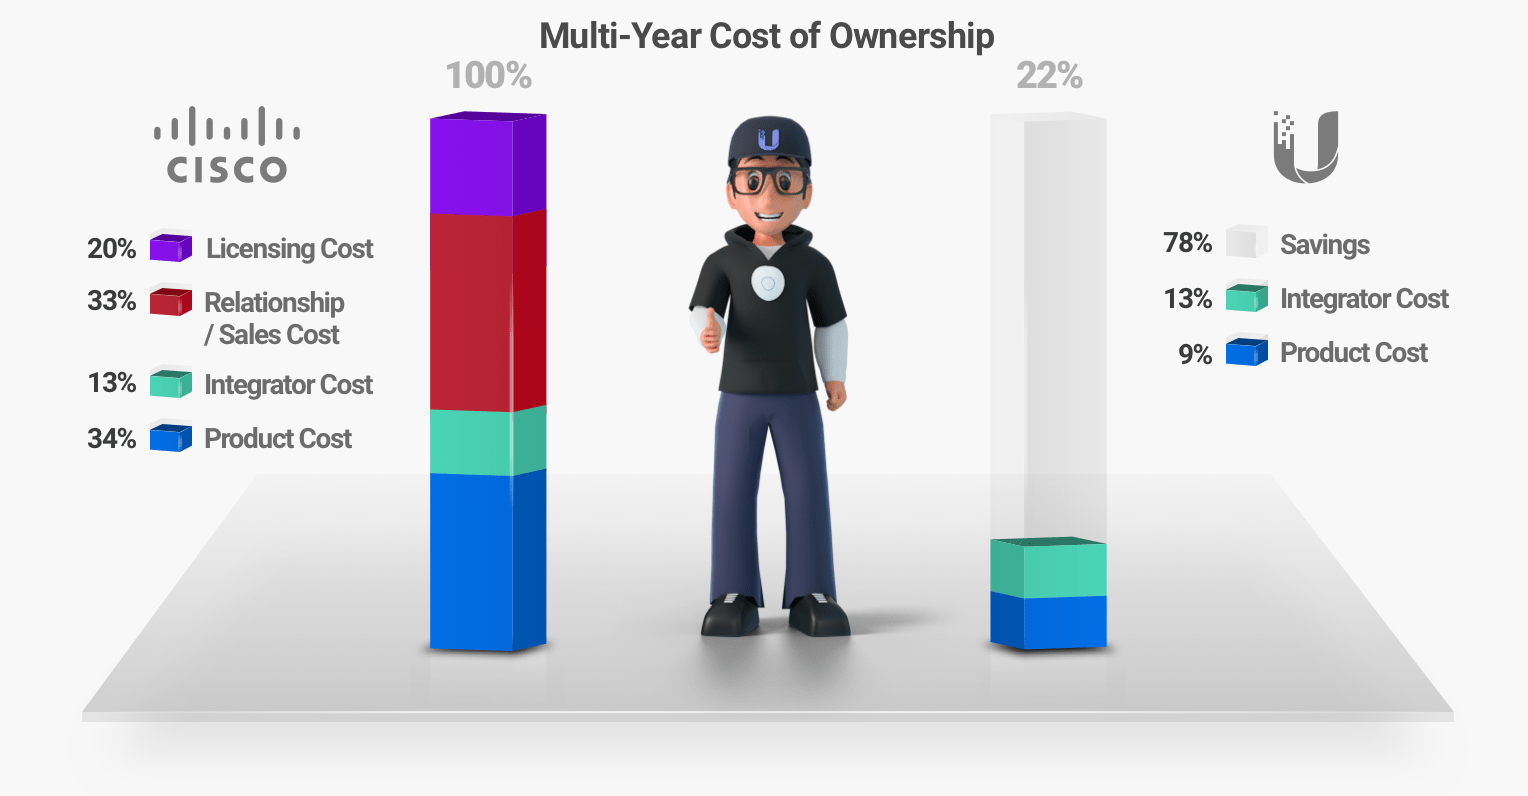 Multi-Year Cost of Ownership